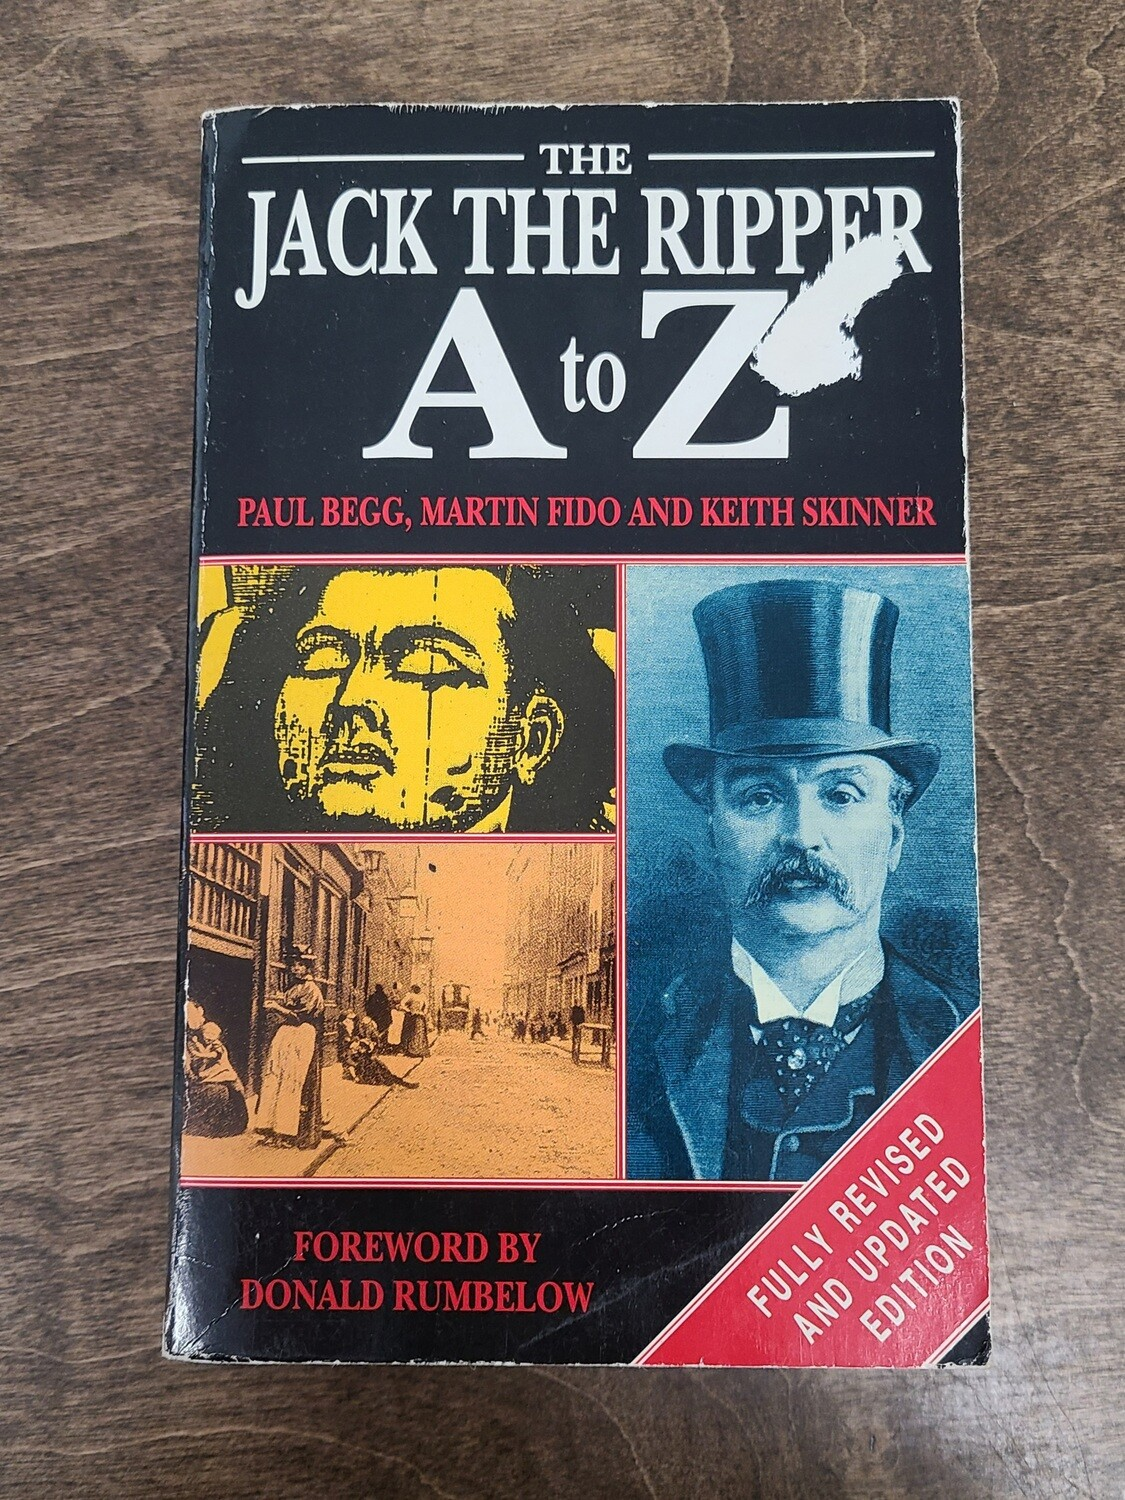 The Jack the Ripper A to Z by Donald Rumbelow